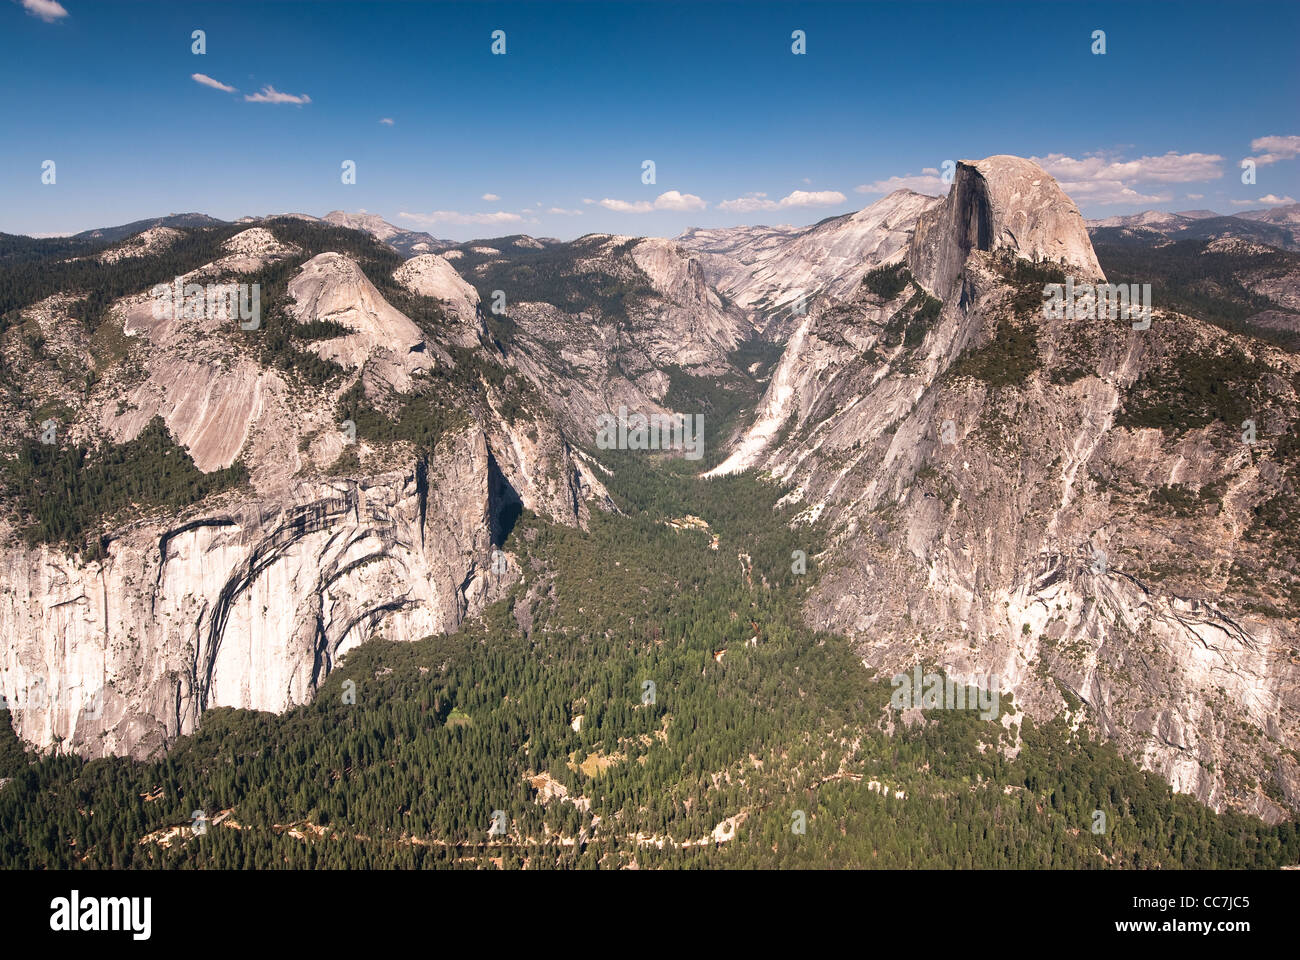 yosemite national park. view from observation point. california, usa - Stock Image